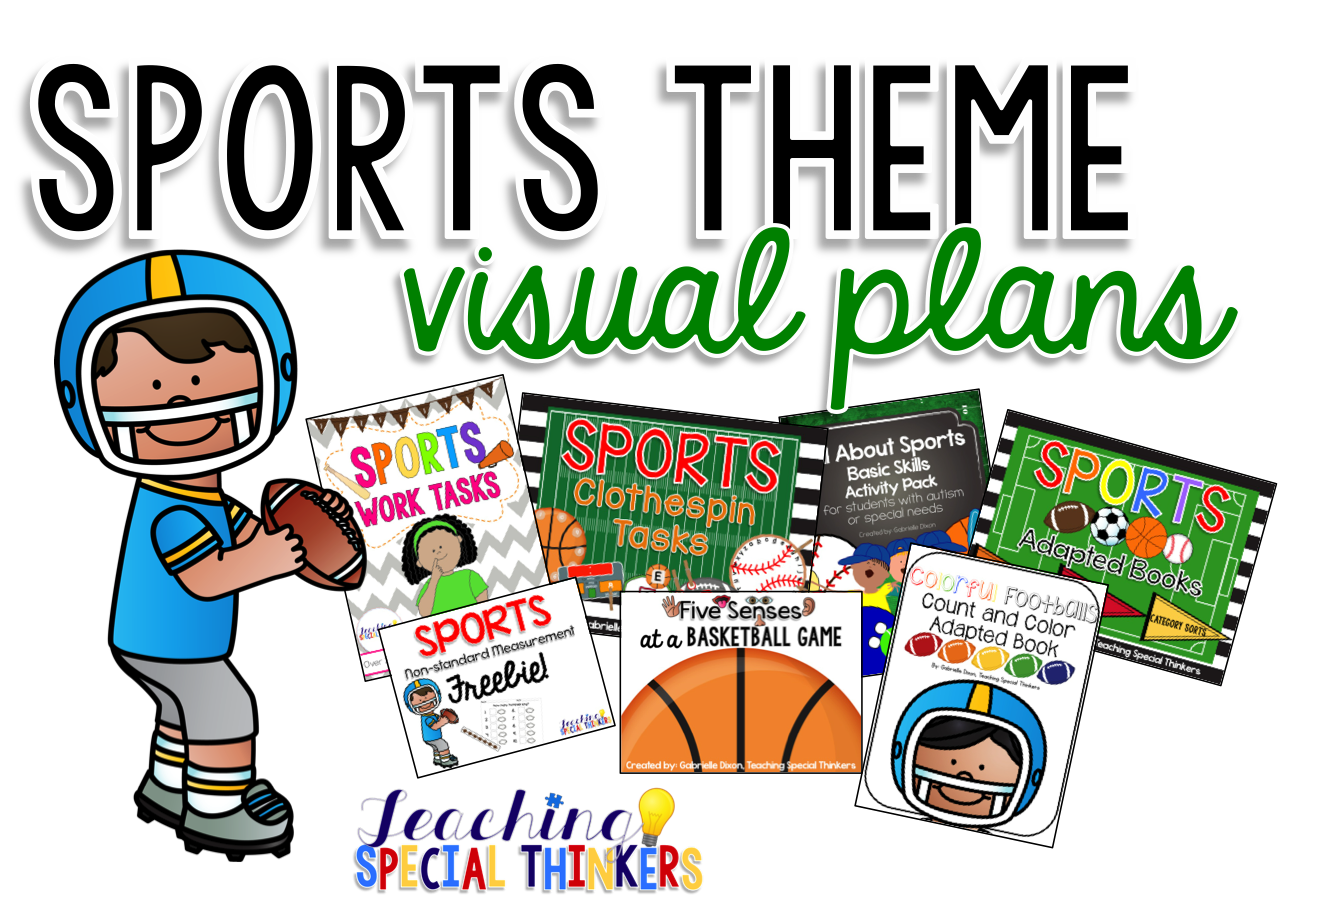 Basketball recess clipart graphic free library Sports Themed Activities {Rafflecopter Giveaway!} graphic free library